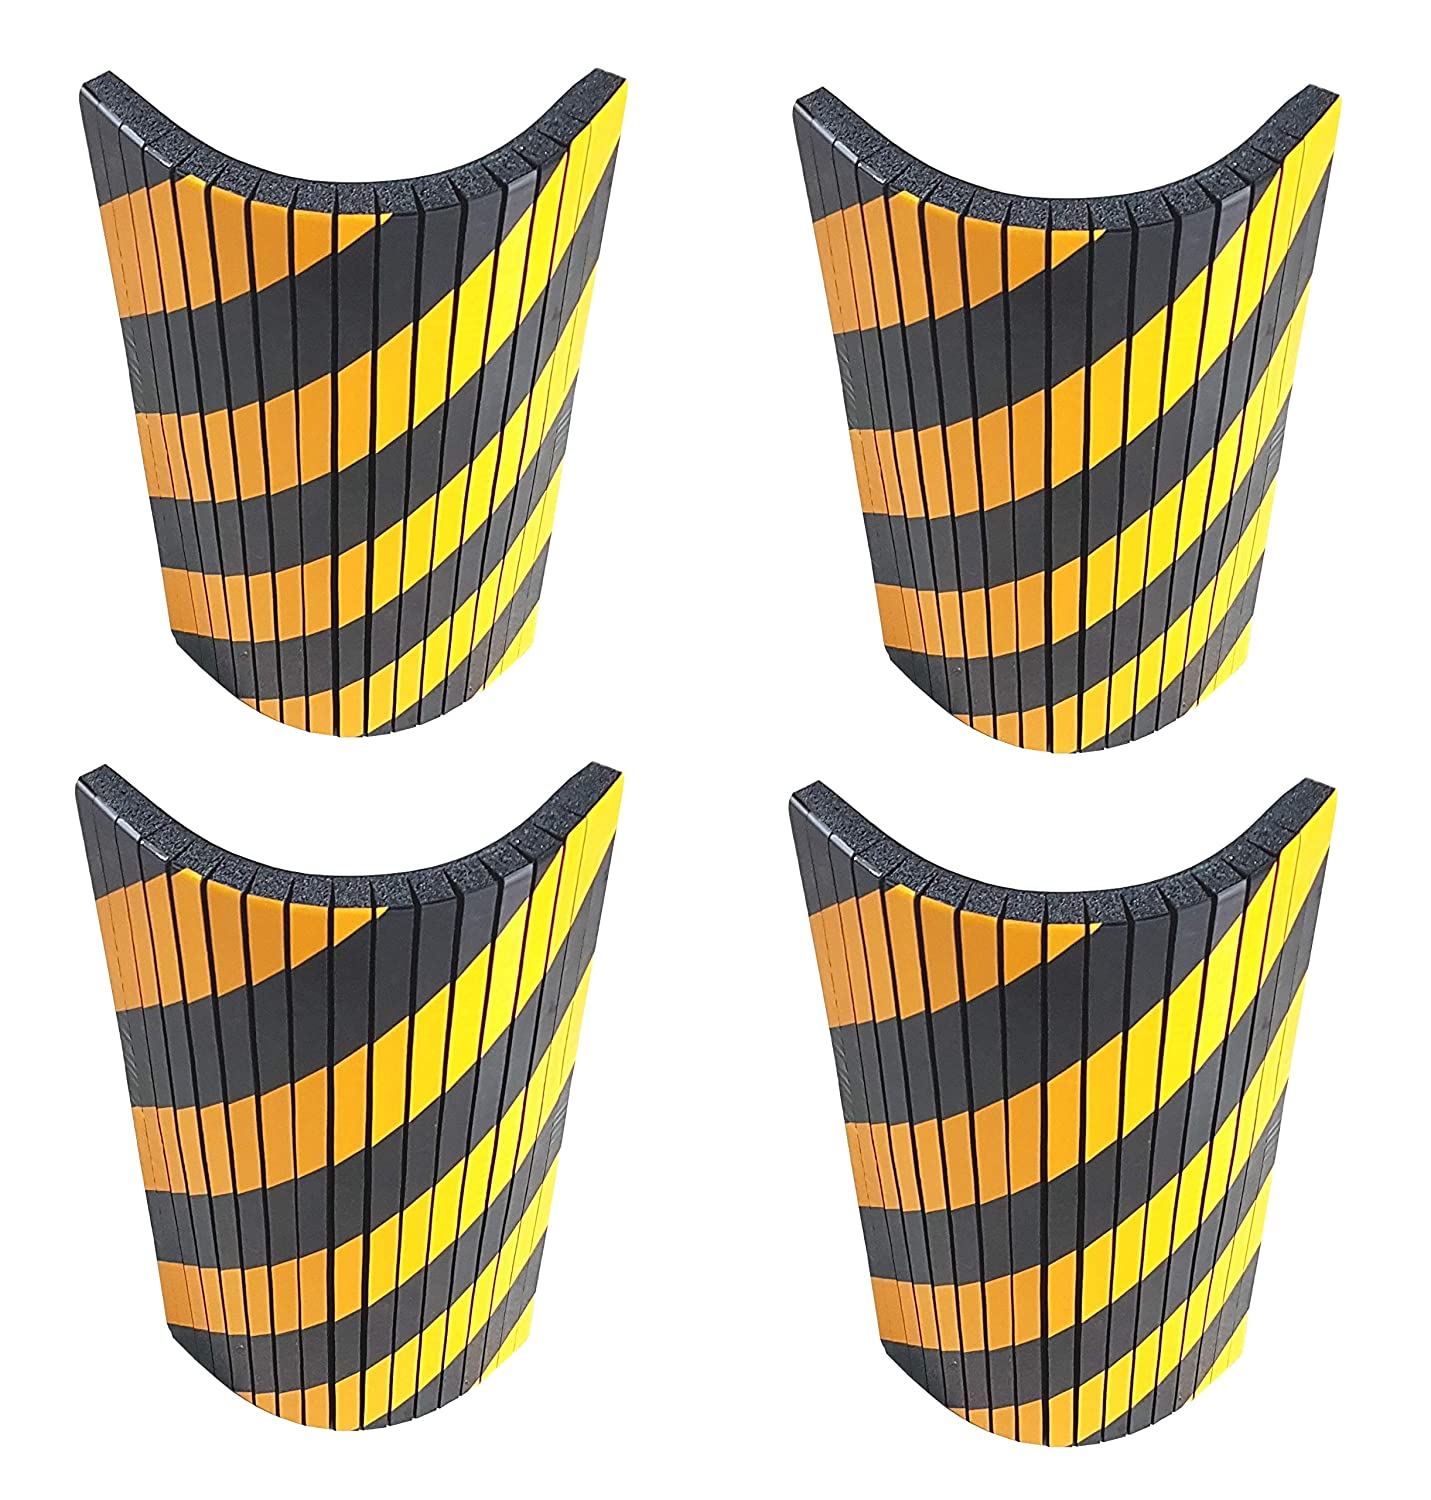 FSWP4425BYx4 Self-adhesive, foam wall guard, to protect car doors, dimensions 17.3'x9.8'x0.8' (44x25x2 cm), notched to fit in rounded edges, with strips black and yellow (Pack of 4 pcs) dimensions 17.3x9.8x0.8 (44x25x2 cm) CDS